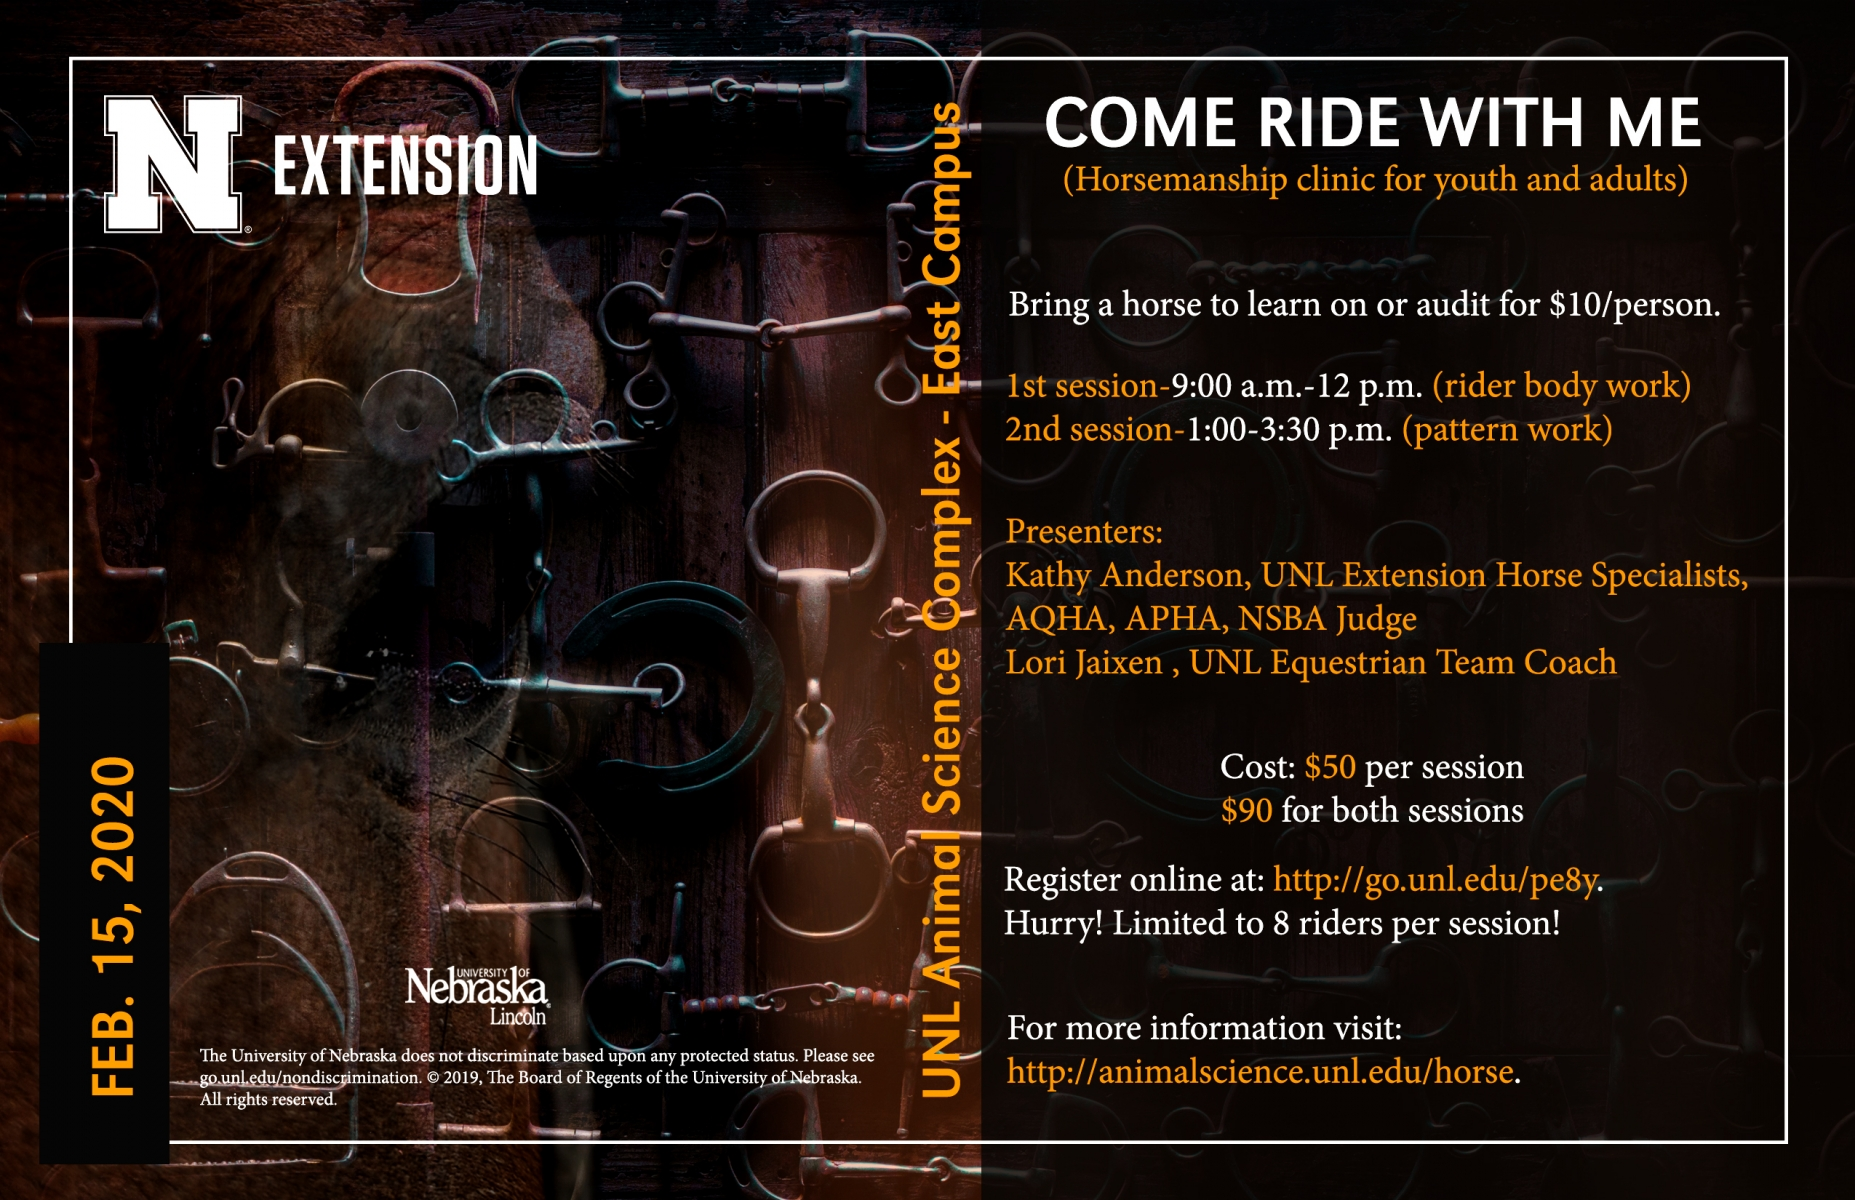 Come Ride With Me flyer